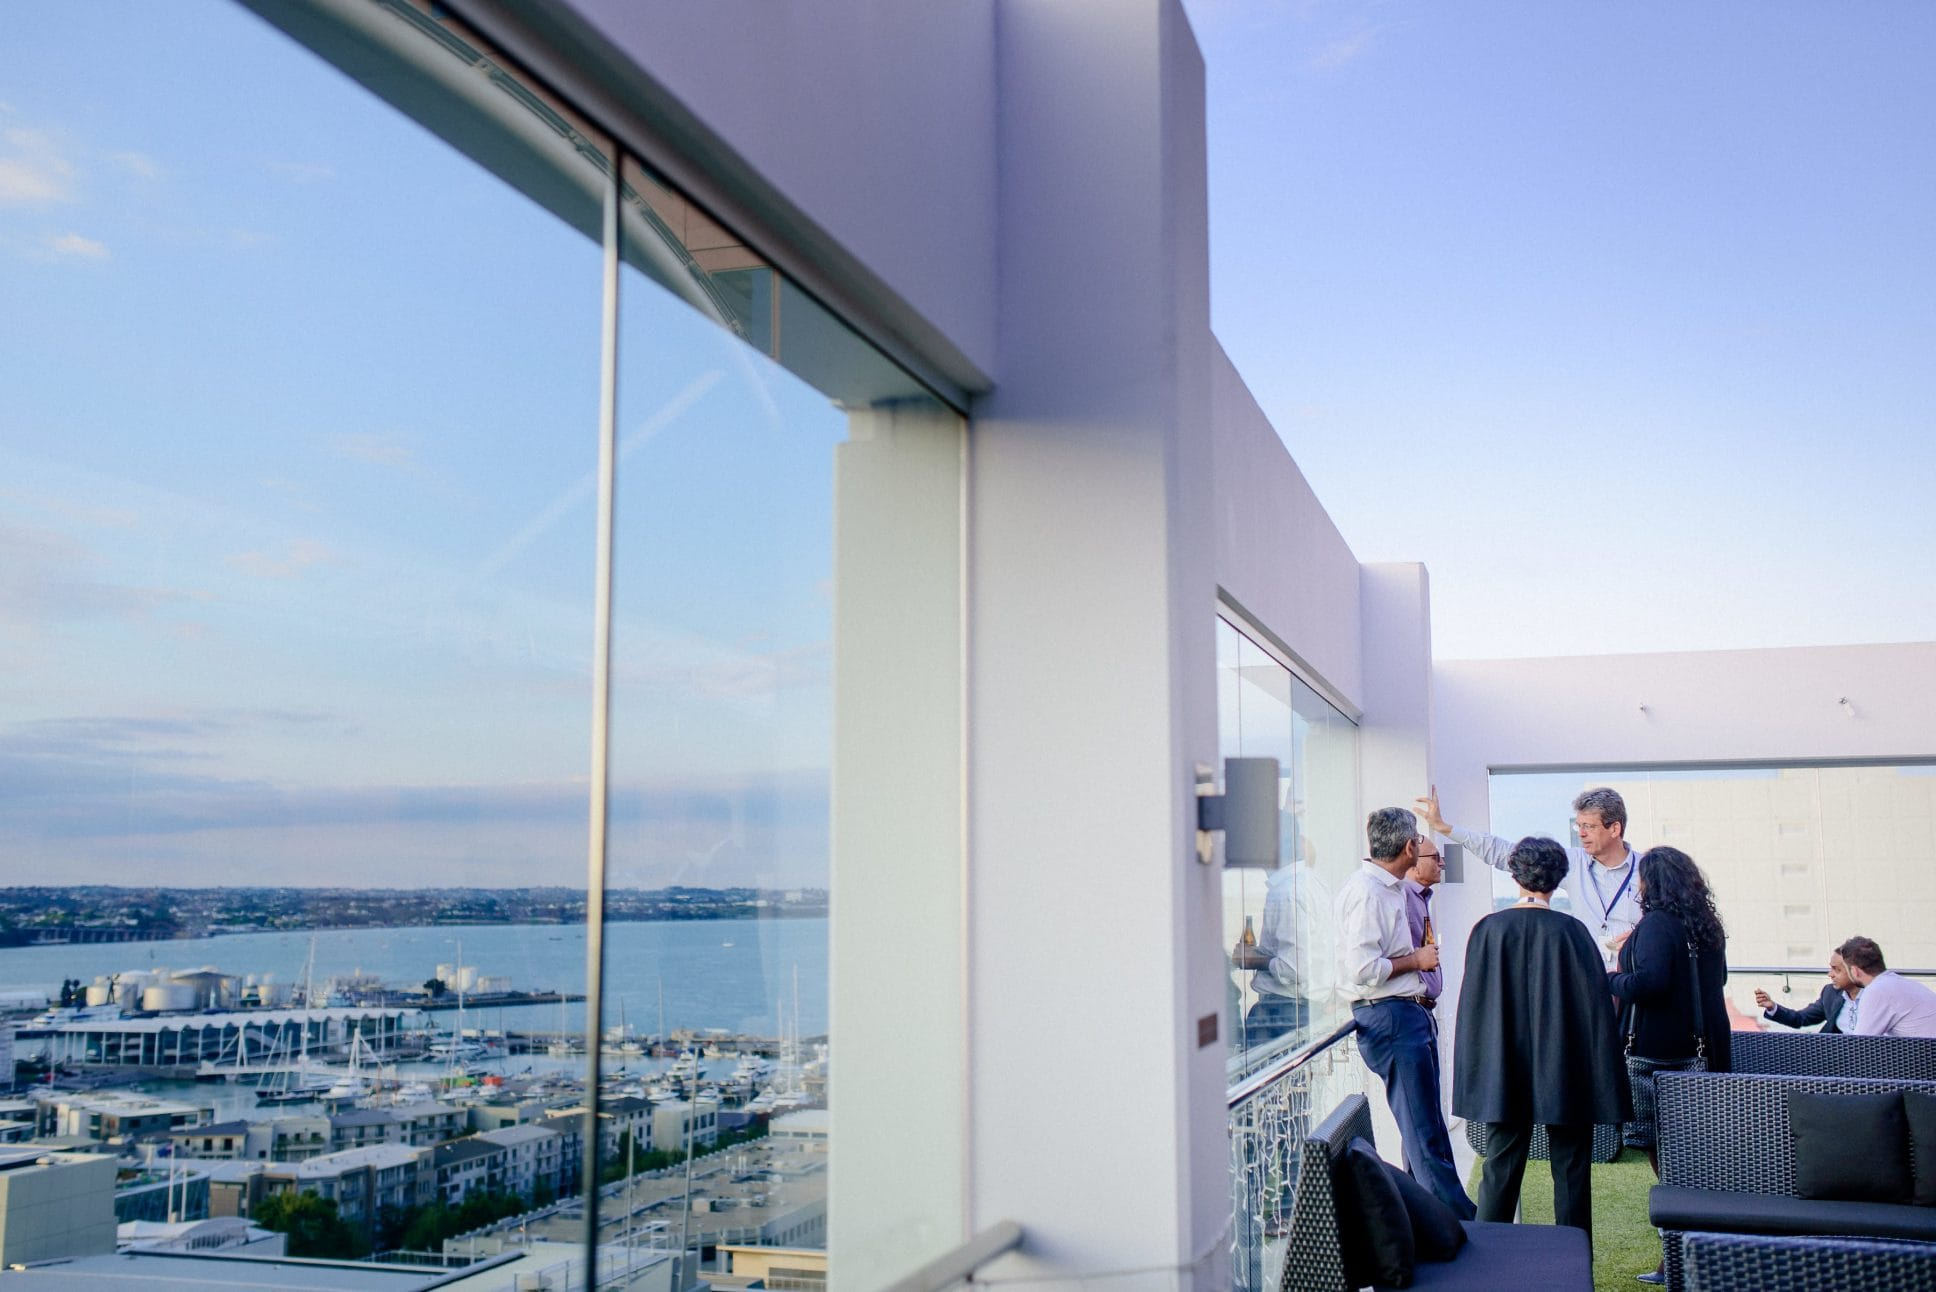 Epic view from the rooftop terrace at Rydges Auckland.